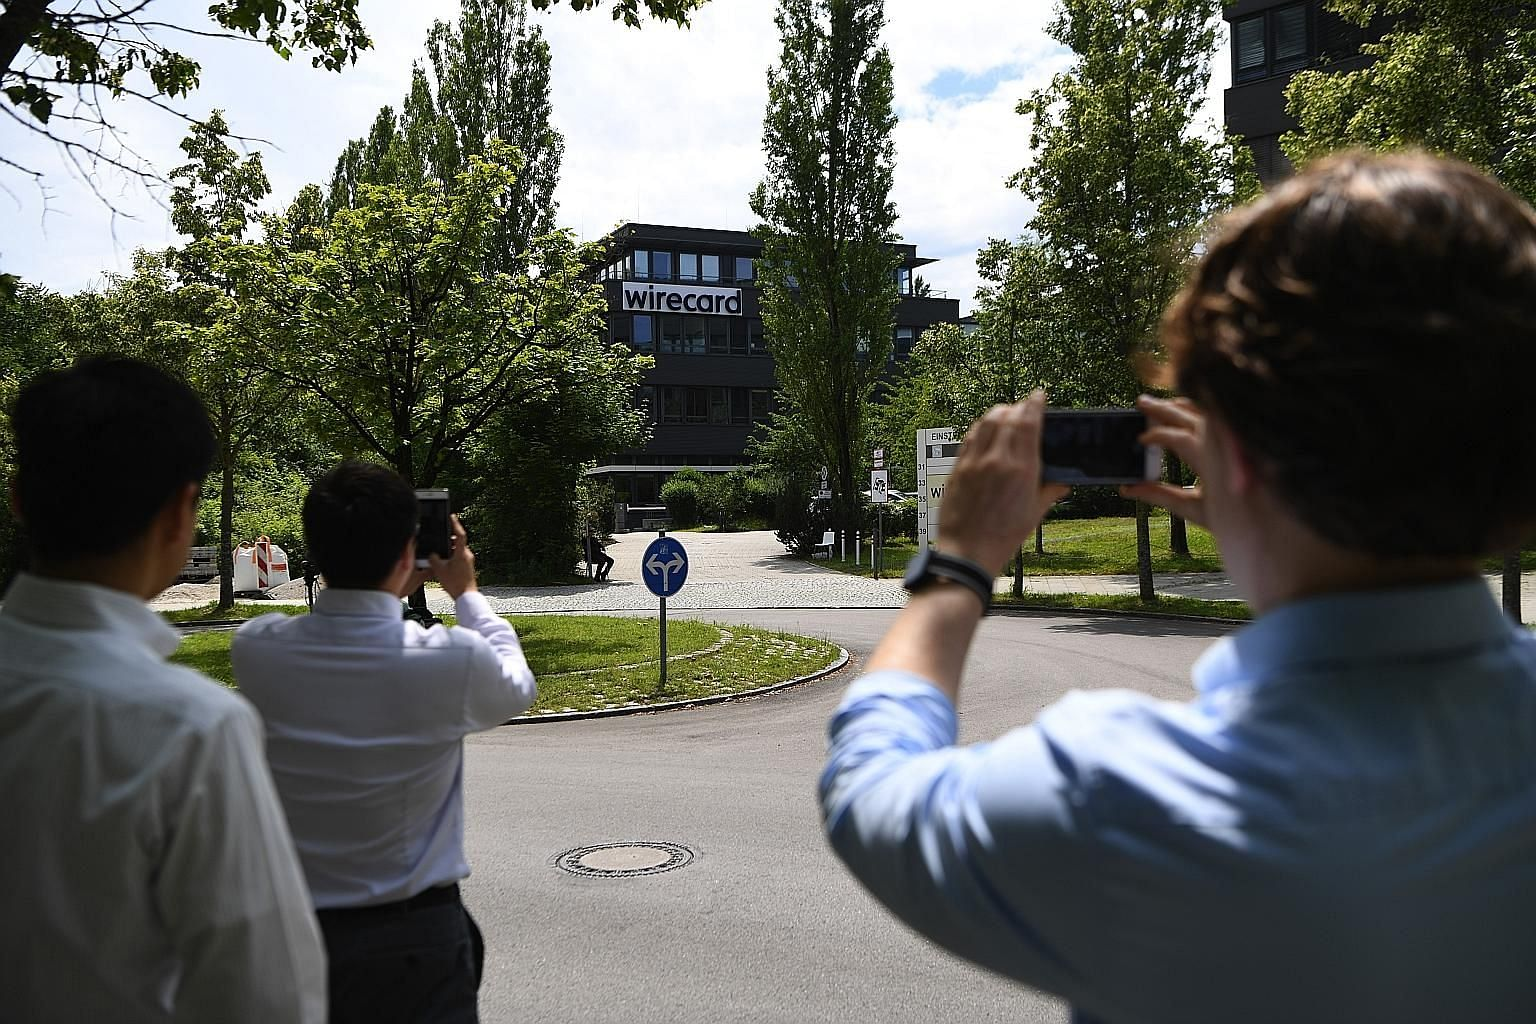 Passers-by taking snapshots of the Wirecard headquarters in Munich, Germany. The company filed for insolvency last Thursday, after almost €2 billion (S$3.13 billion) went missing from its accounts. PHOTO: BLOOMBERG